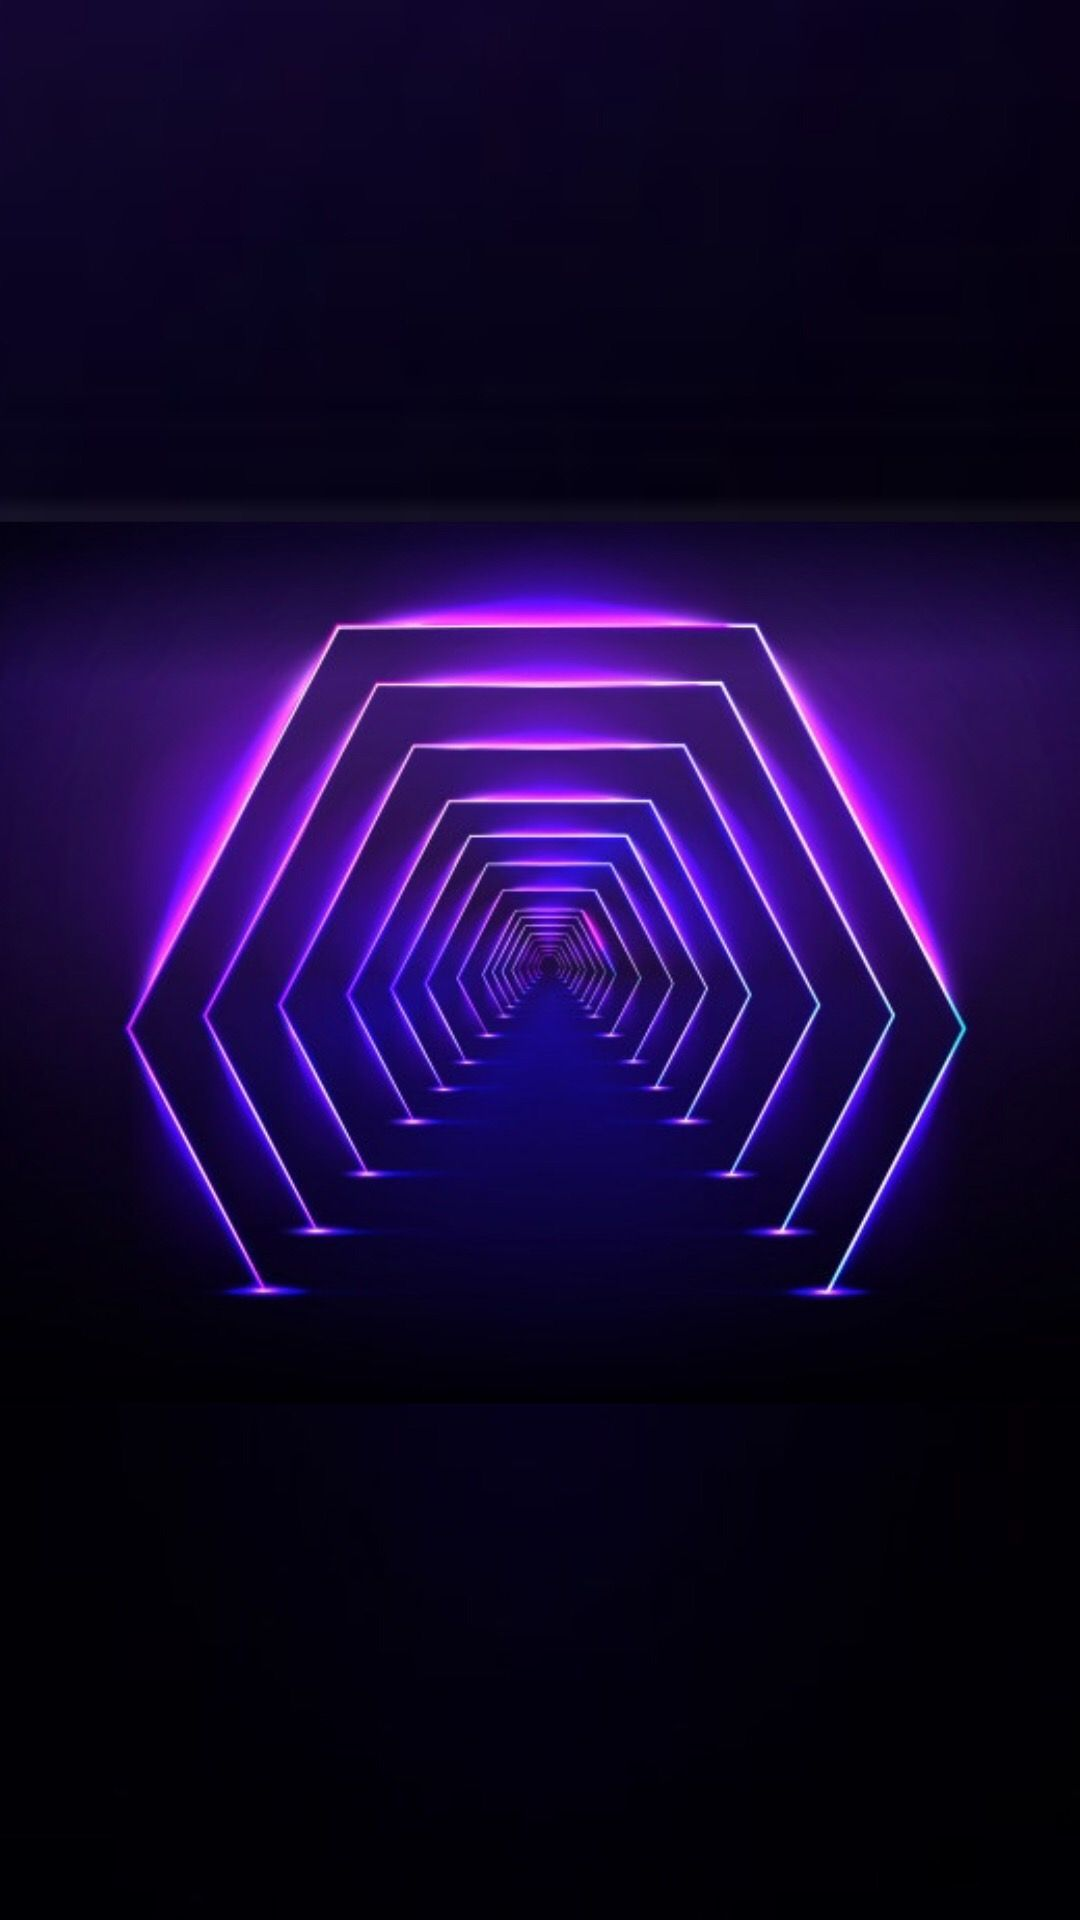 Cool Geometric Poster Background | Wallpaper iphone neon ...